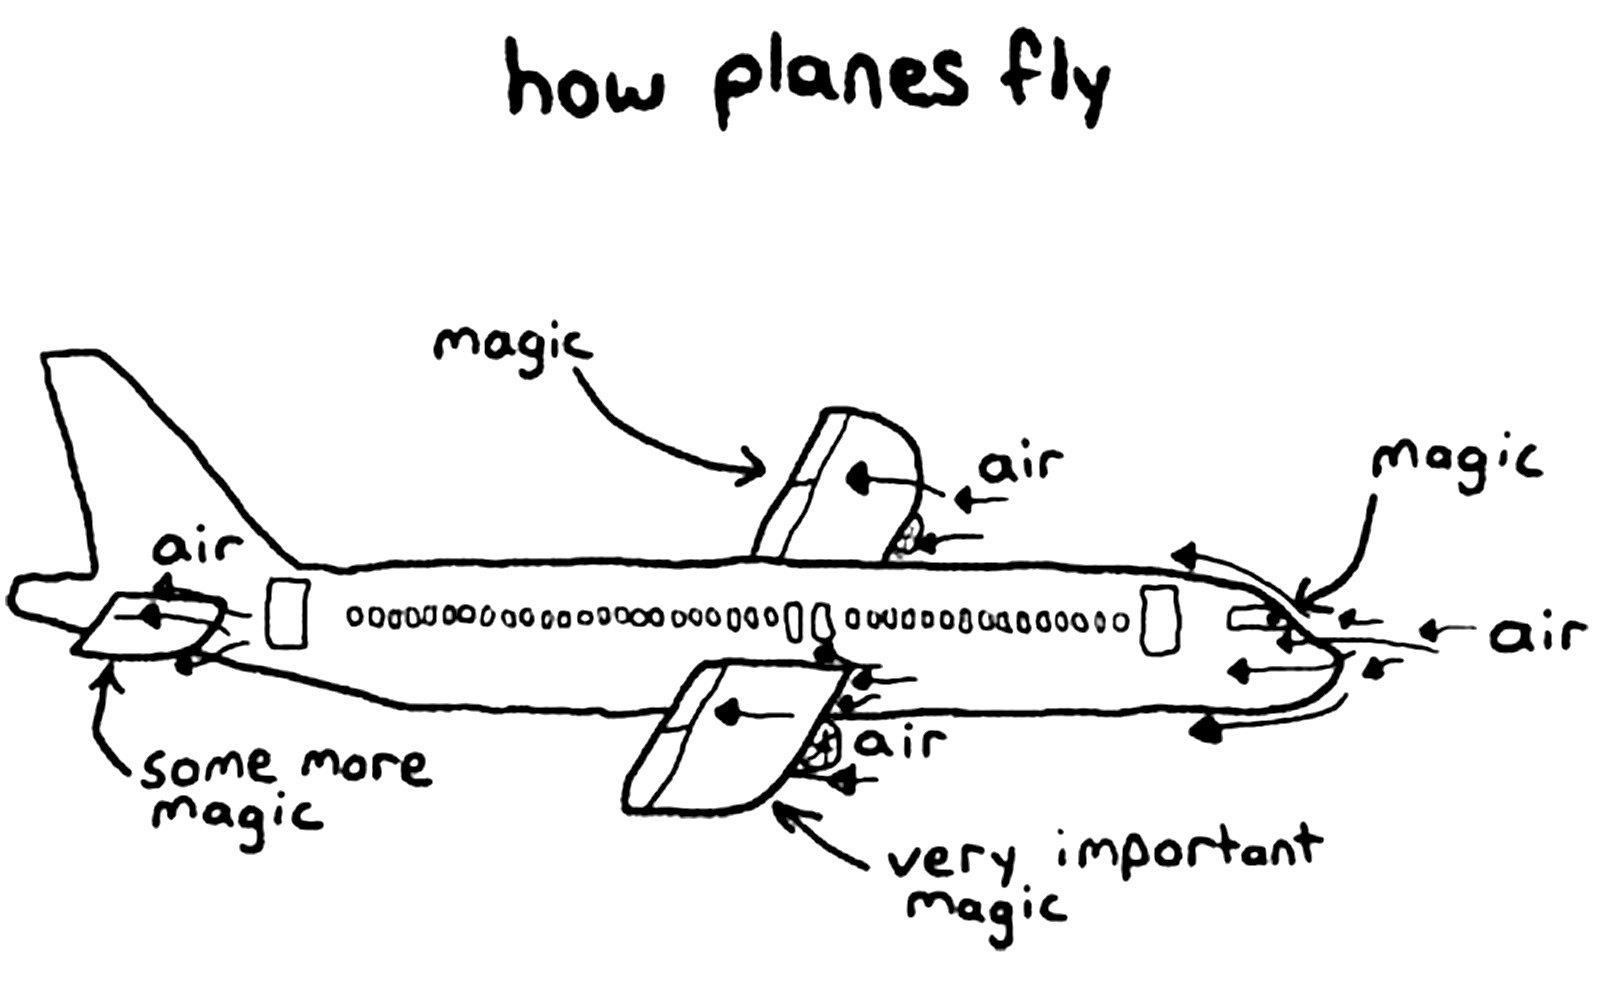 What do the planes fly on 30